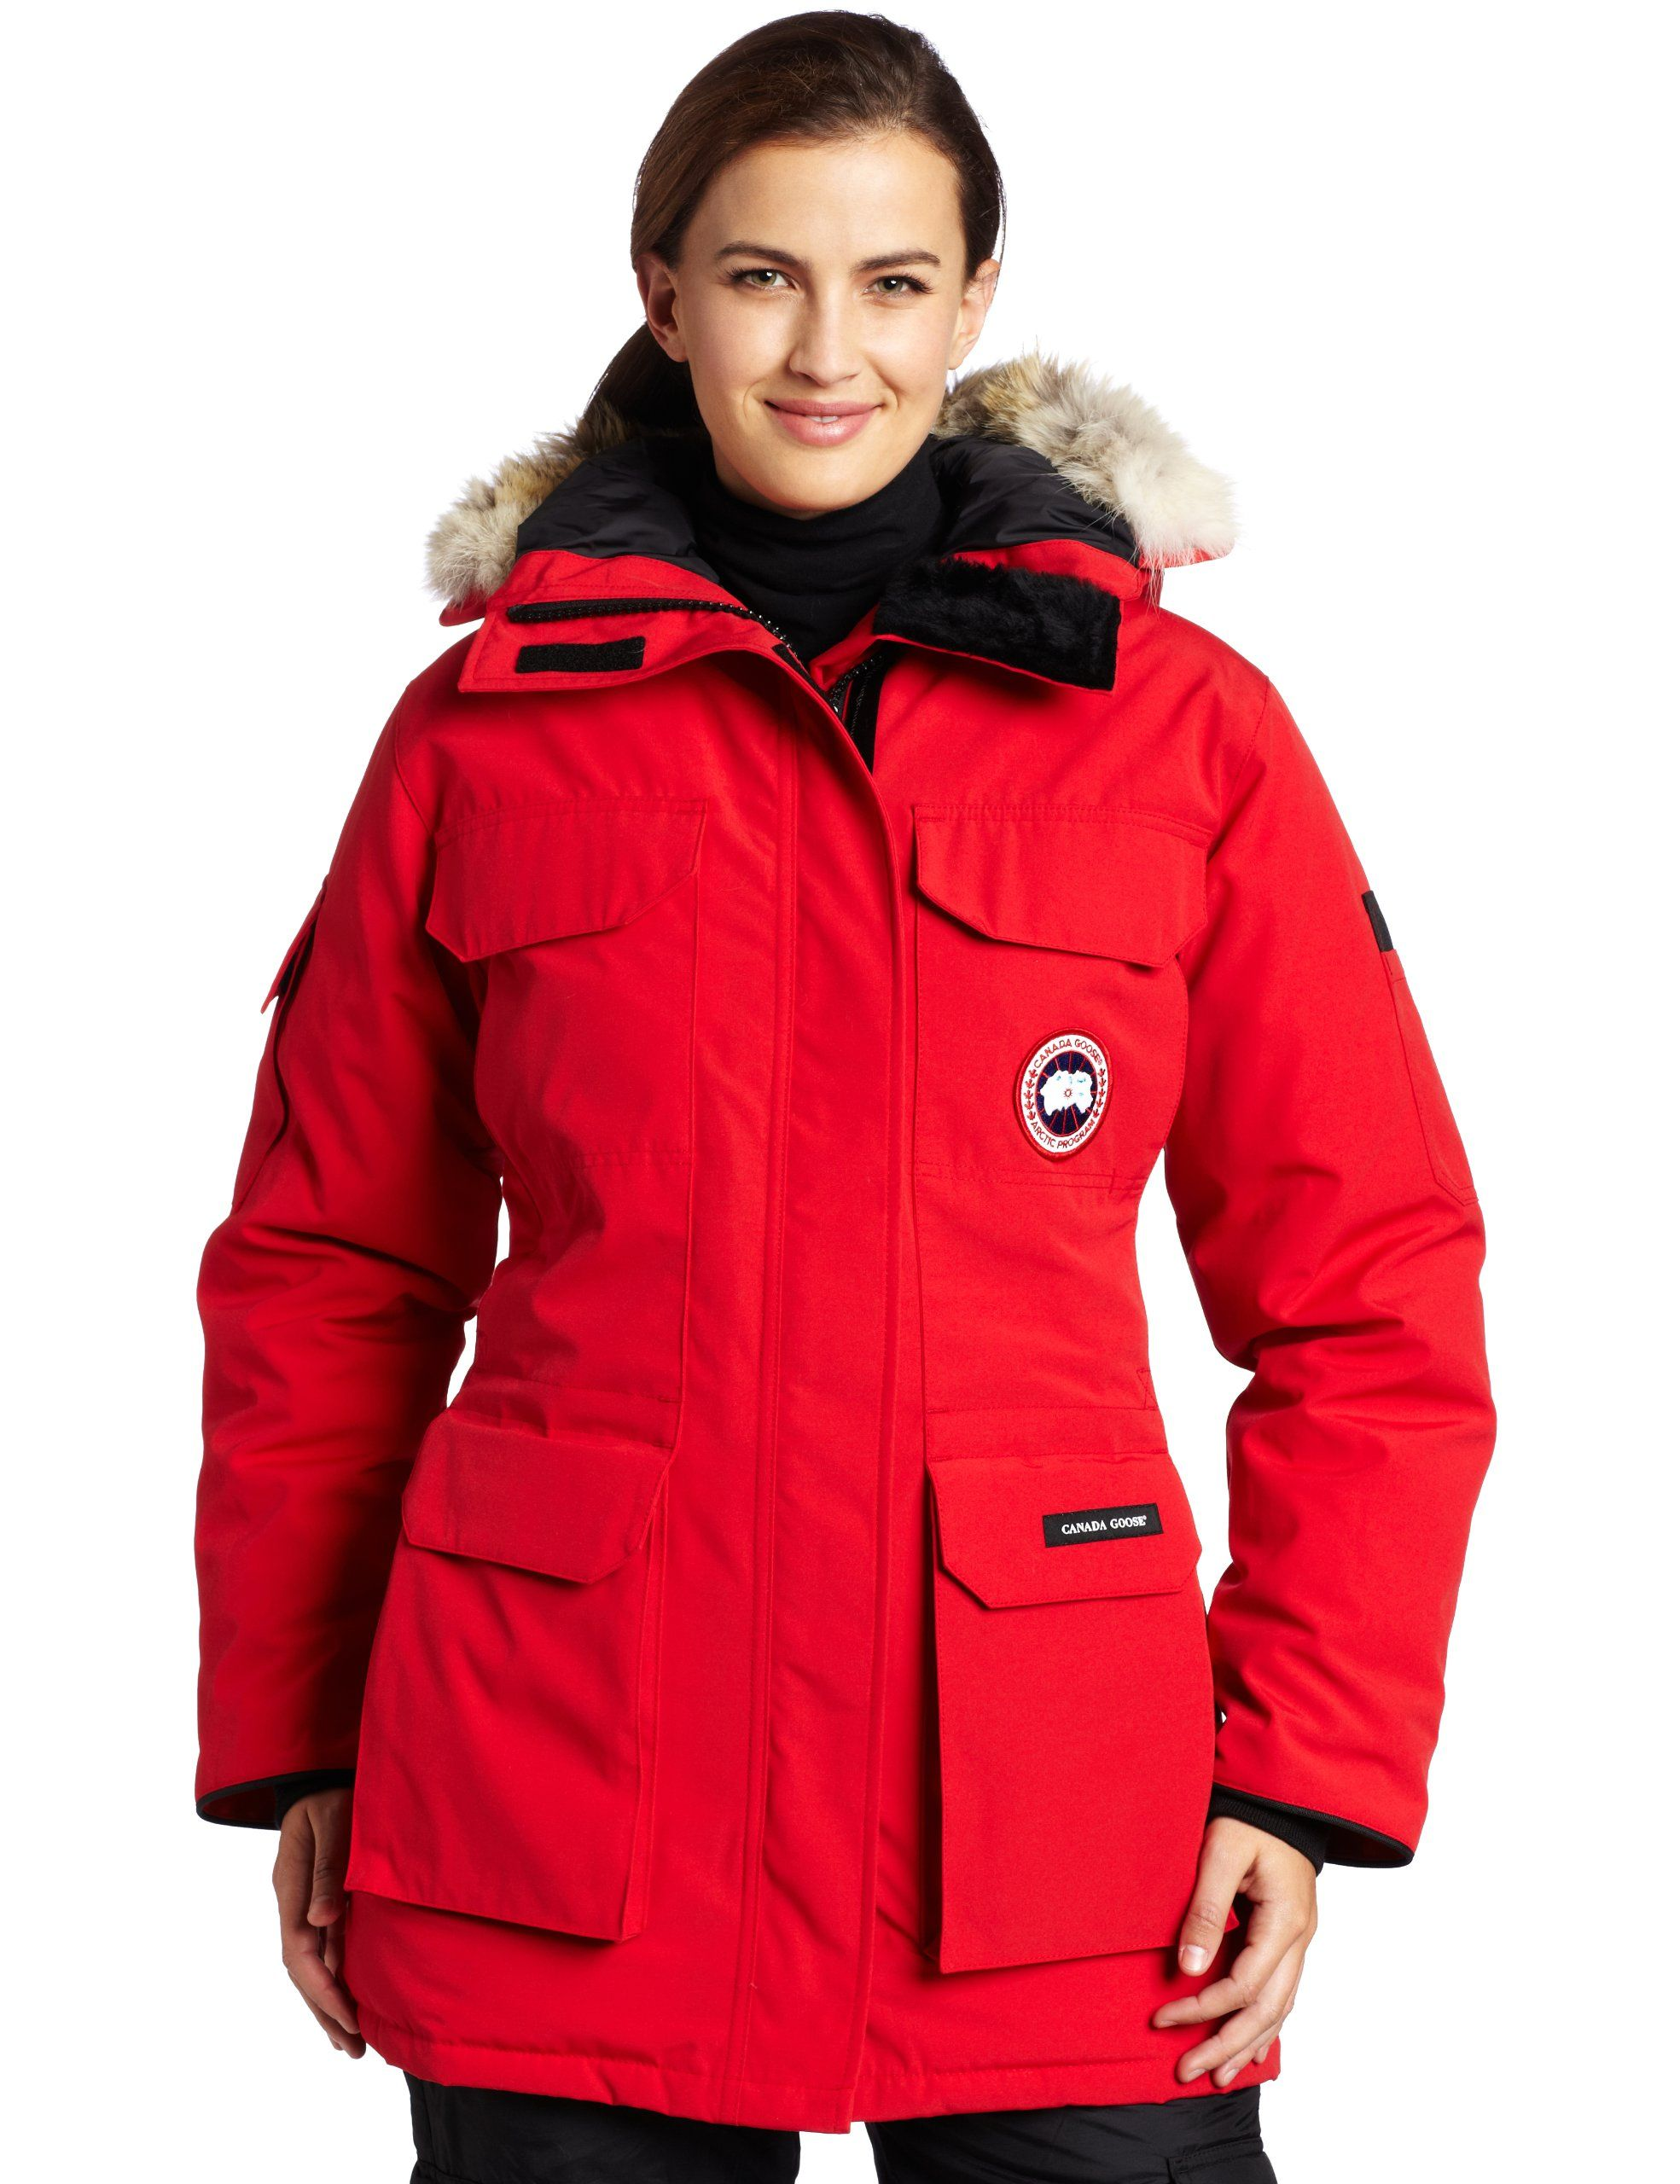 Canada Goose Women's Expedition Parka,Red,Medium. Rated a 5 on Canada Goose's